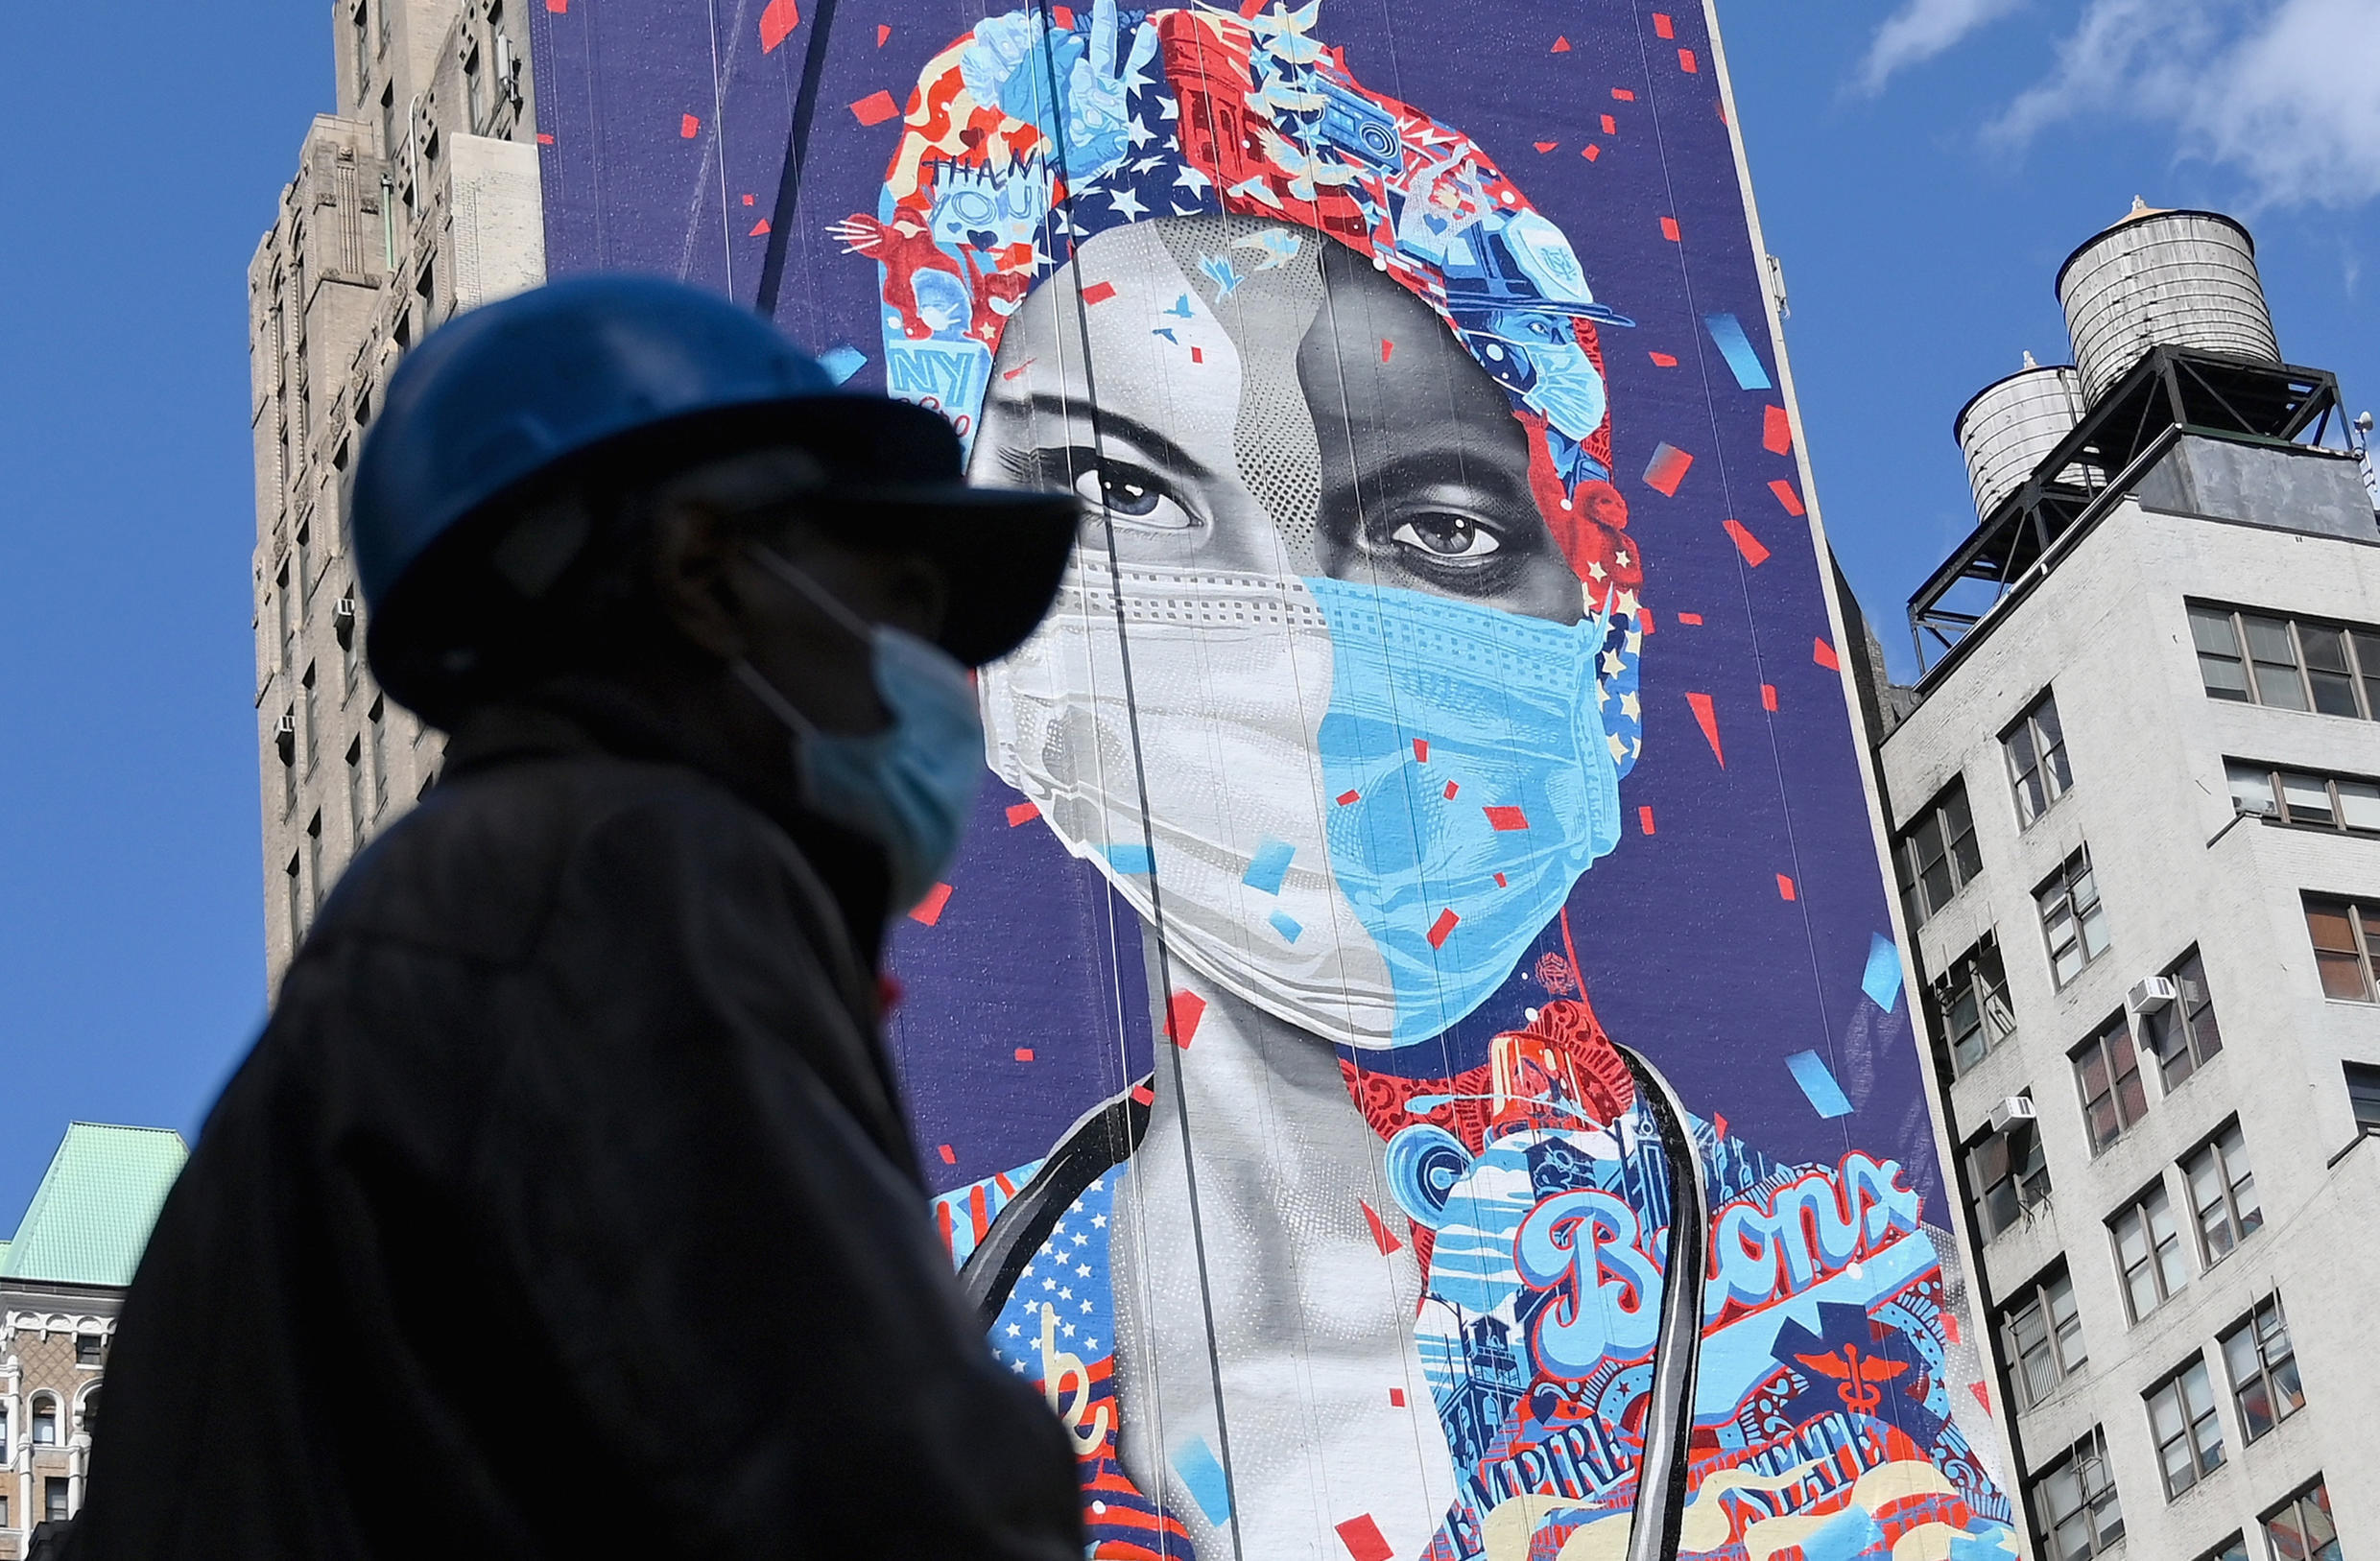 A person walks past a mural on a building on May 7, 2020 in New York City